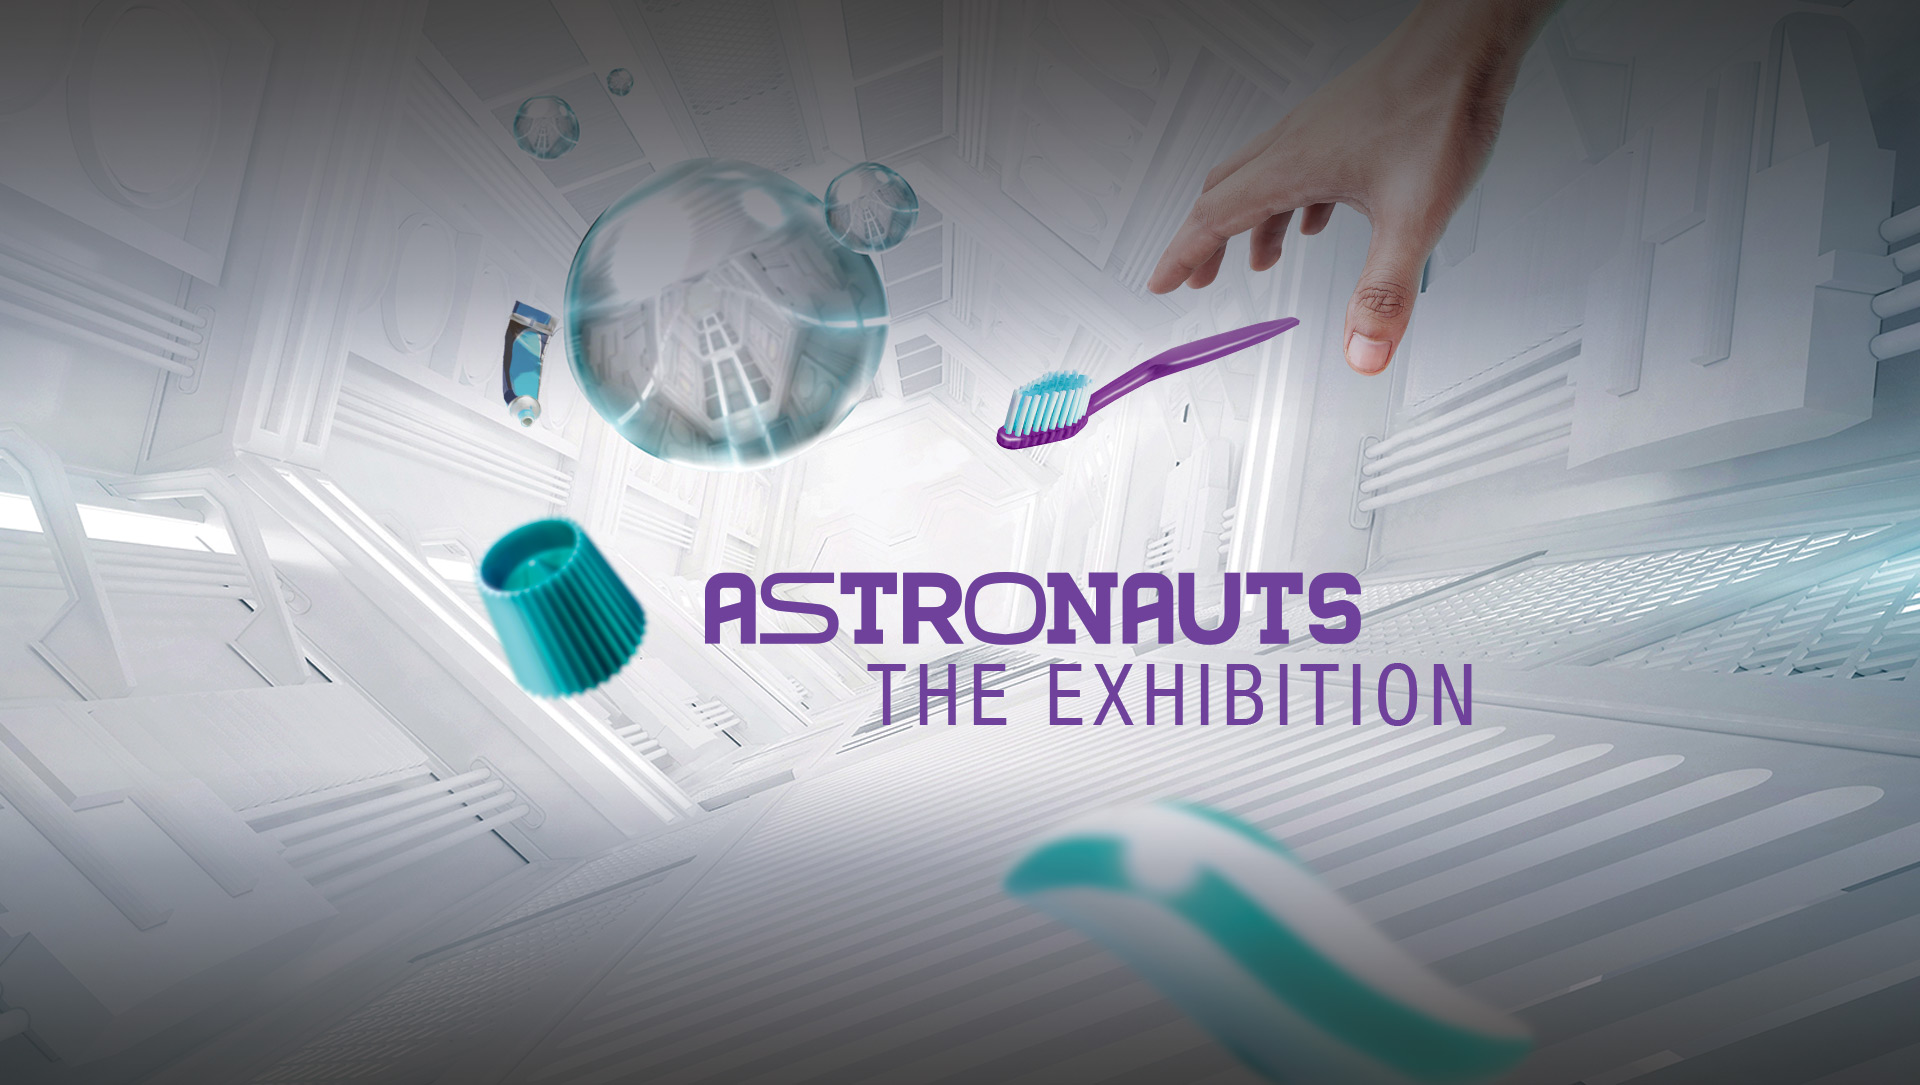 astronauts the exhibition